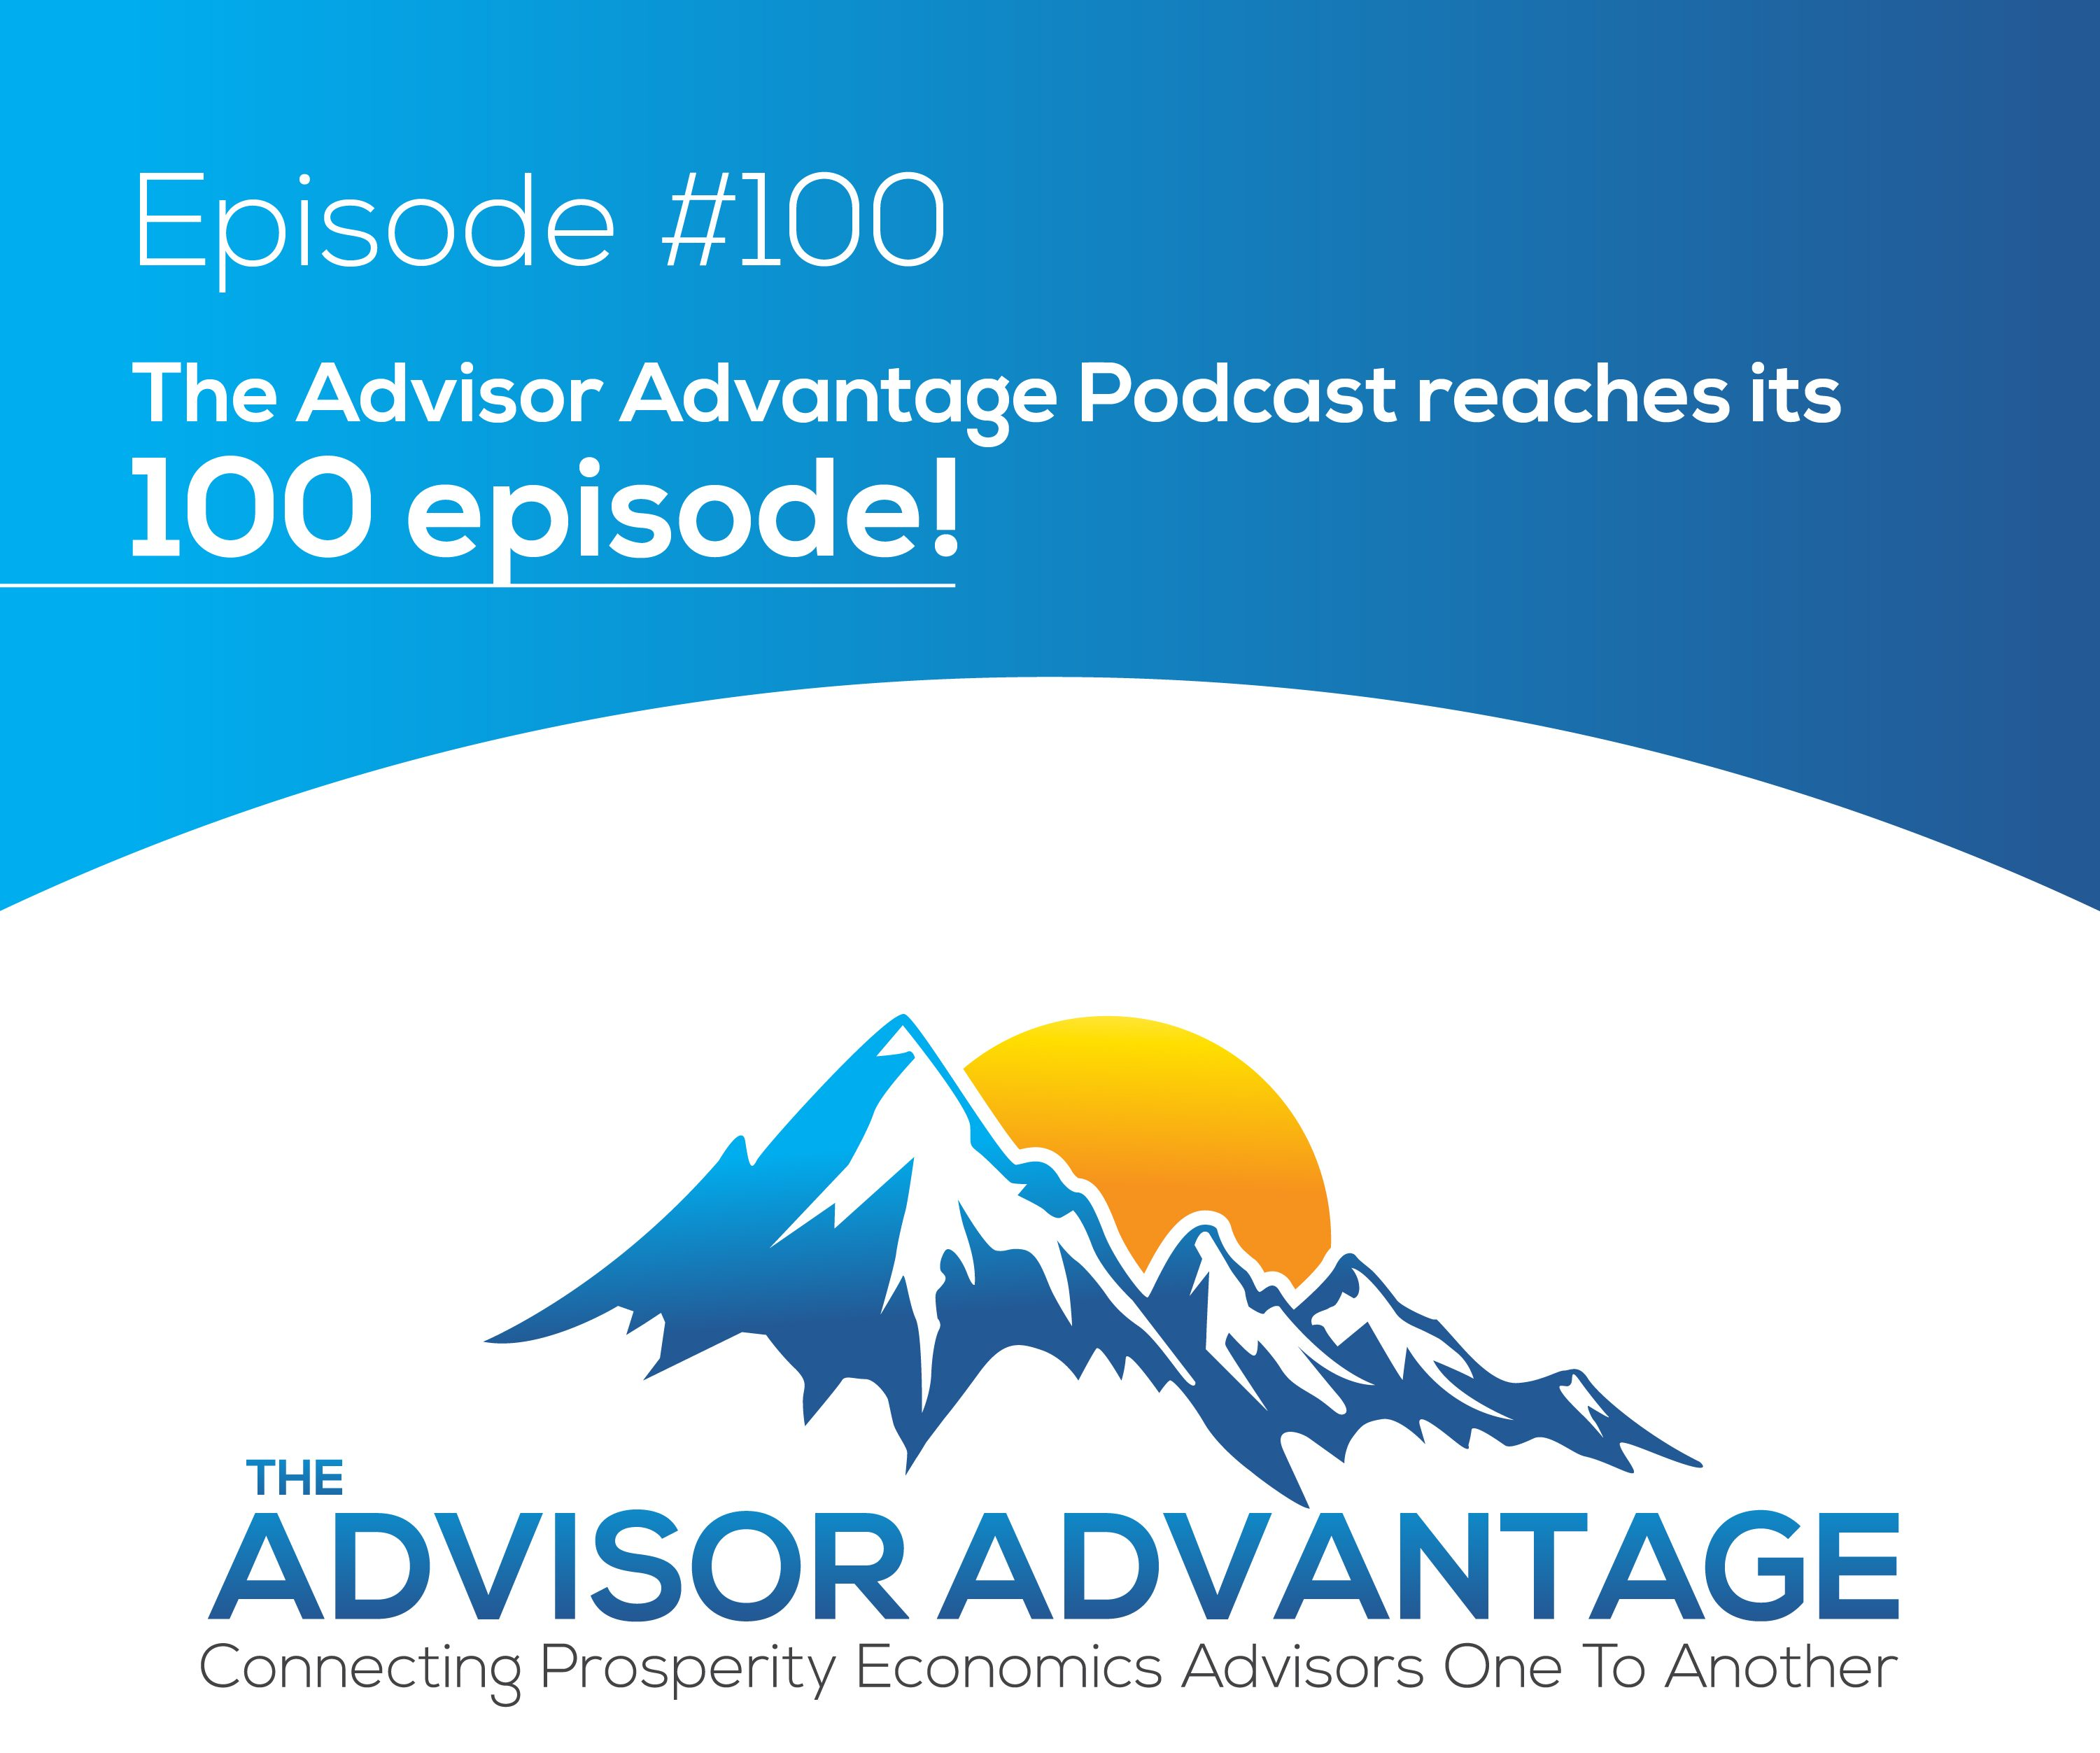 The Advisor Advantage Podcast reaches its 100 episode!